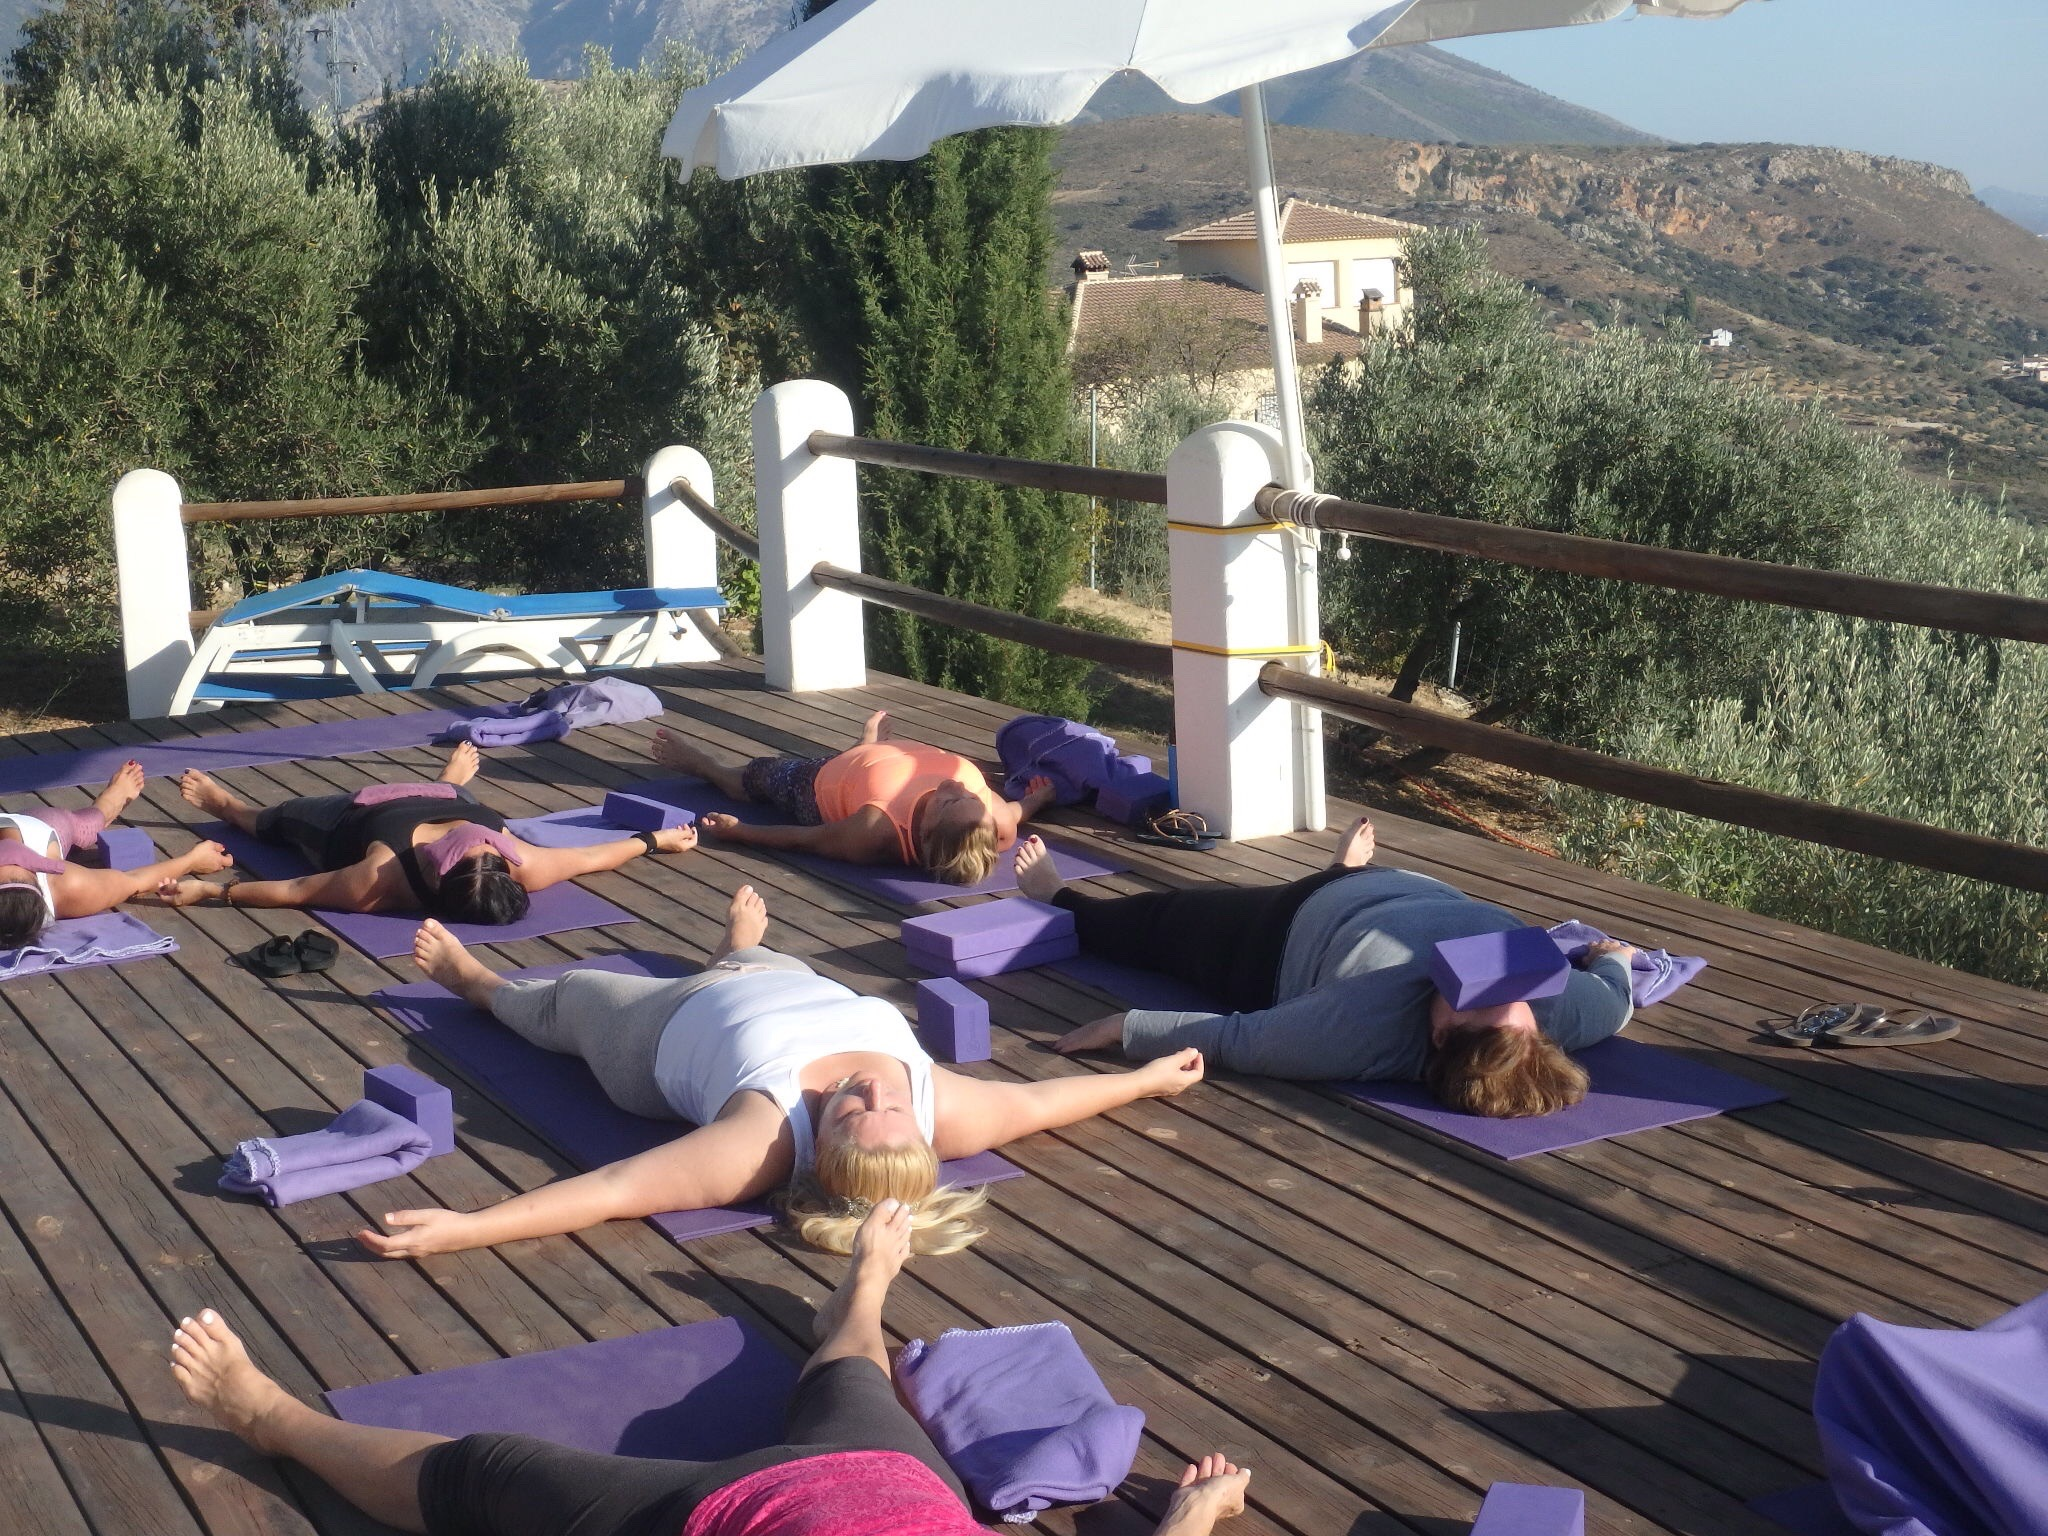 Yoga on the outdoor Deck at Centro Punto de Luz